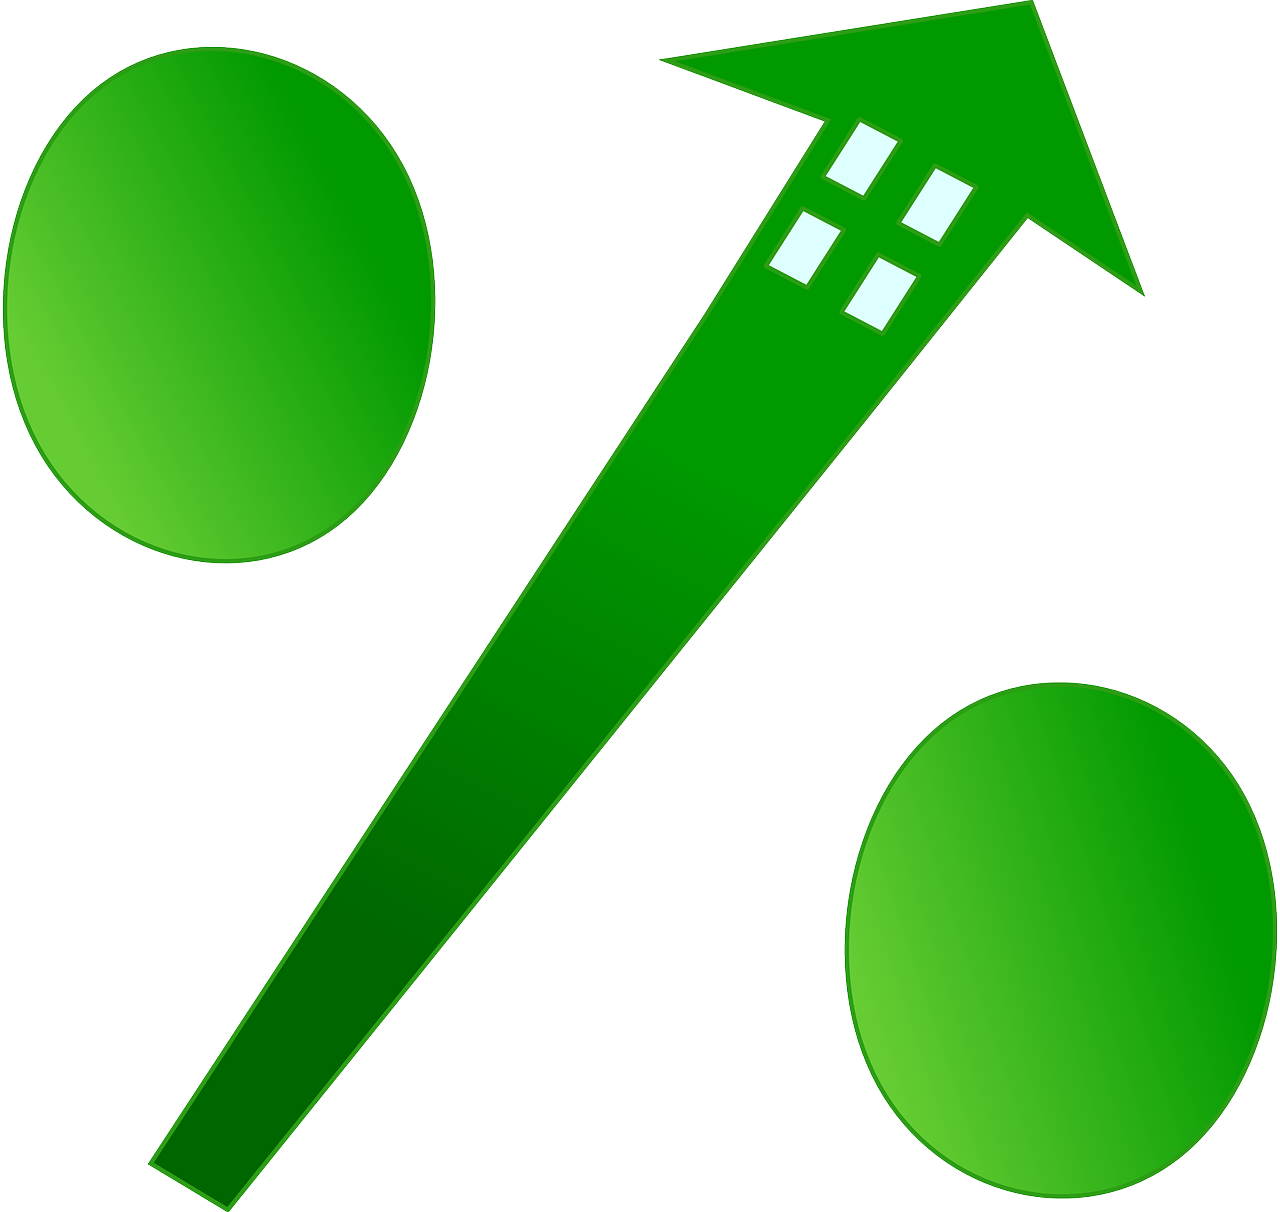 interest rate,interest,percentage,percent,mortgage,hypothecary credit,growing,free vector graphics,free pictures, free photos, free images, royalty free, free illustrations, public domain